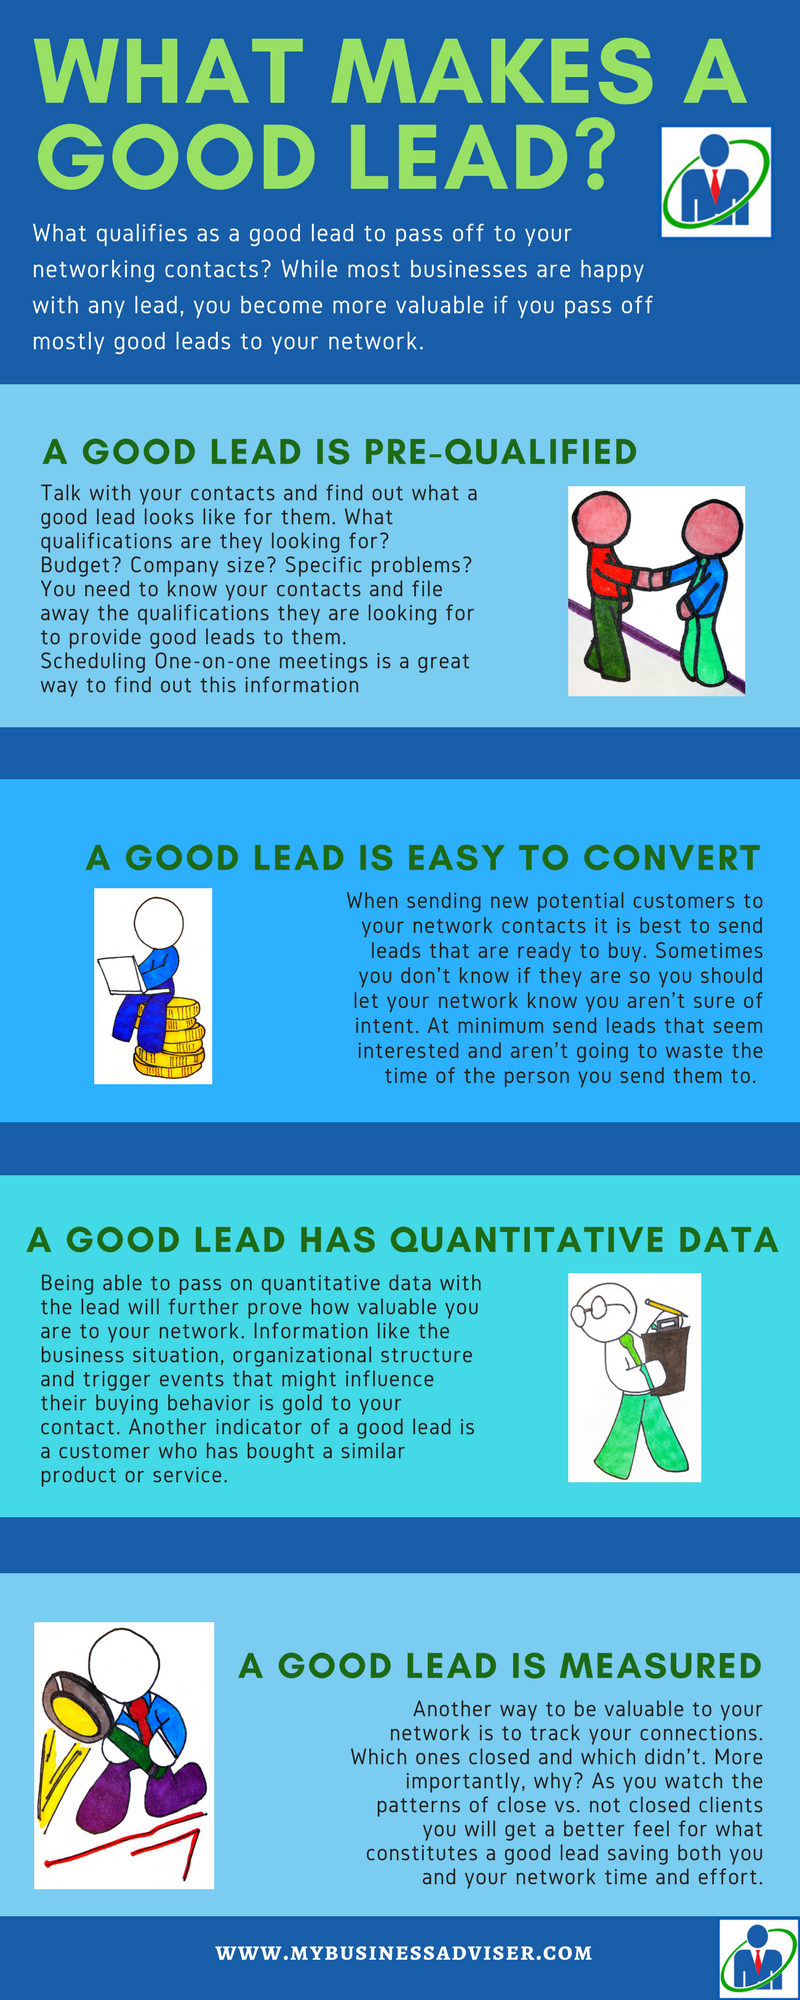 Networking - Good Lead